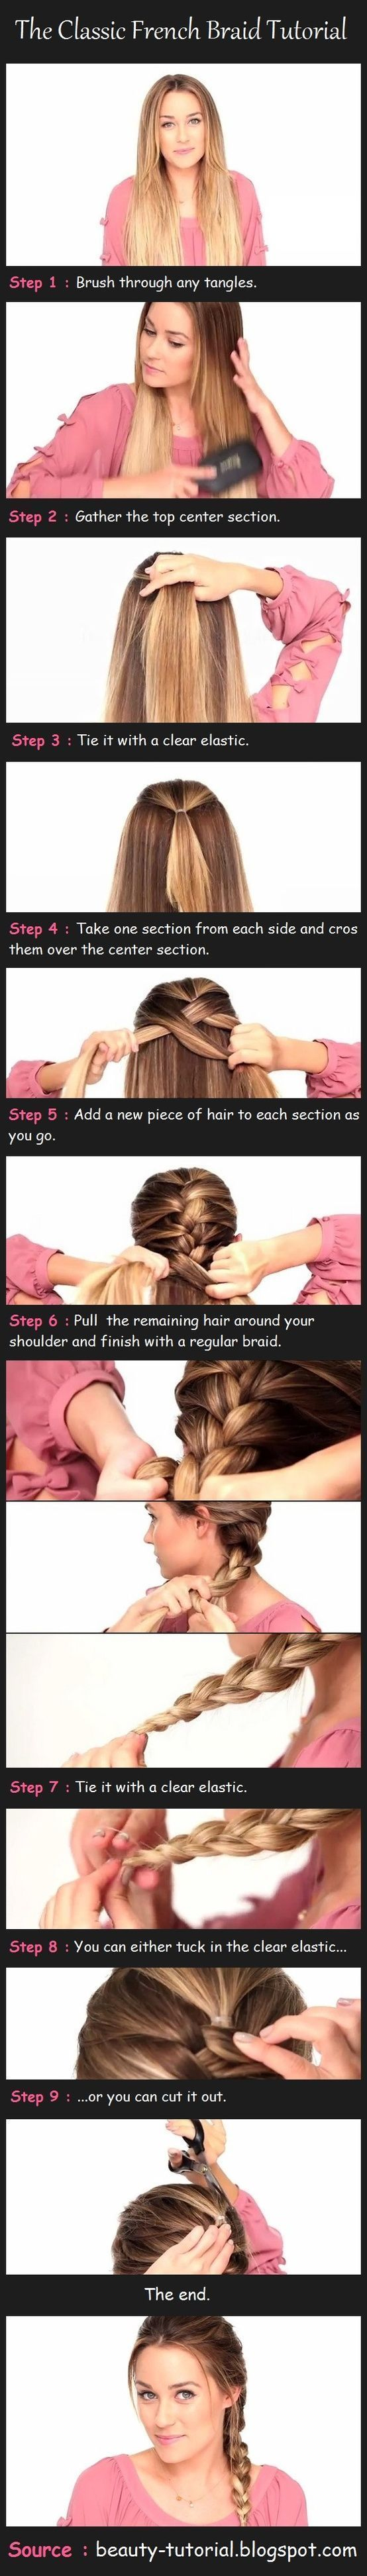 awesome THE CLASSIC FRENCH BRAID